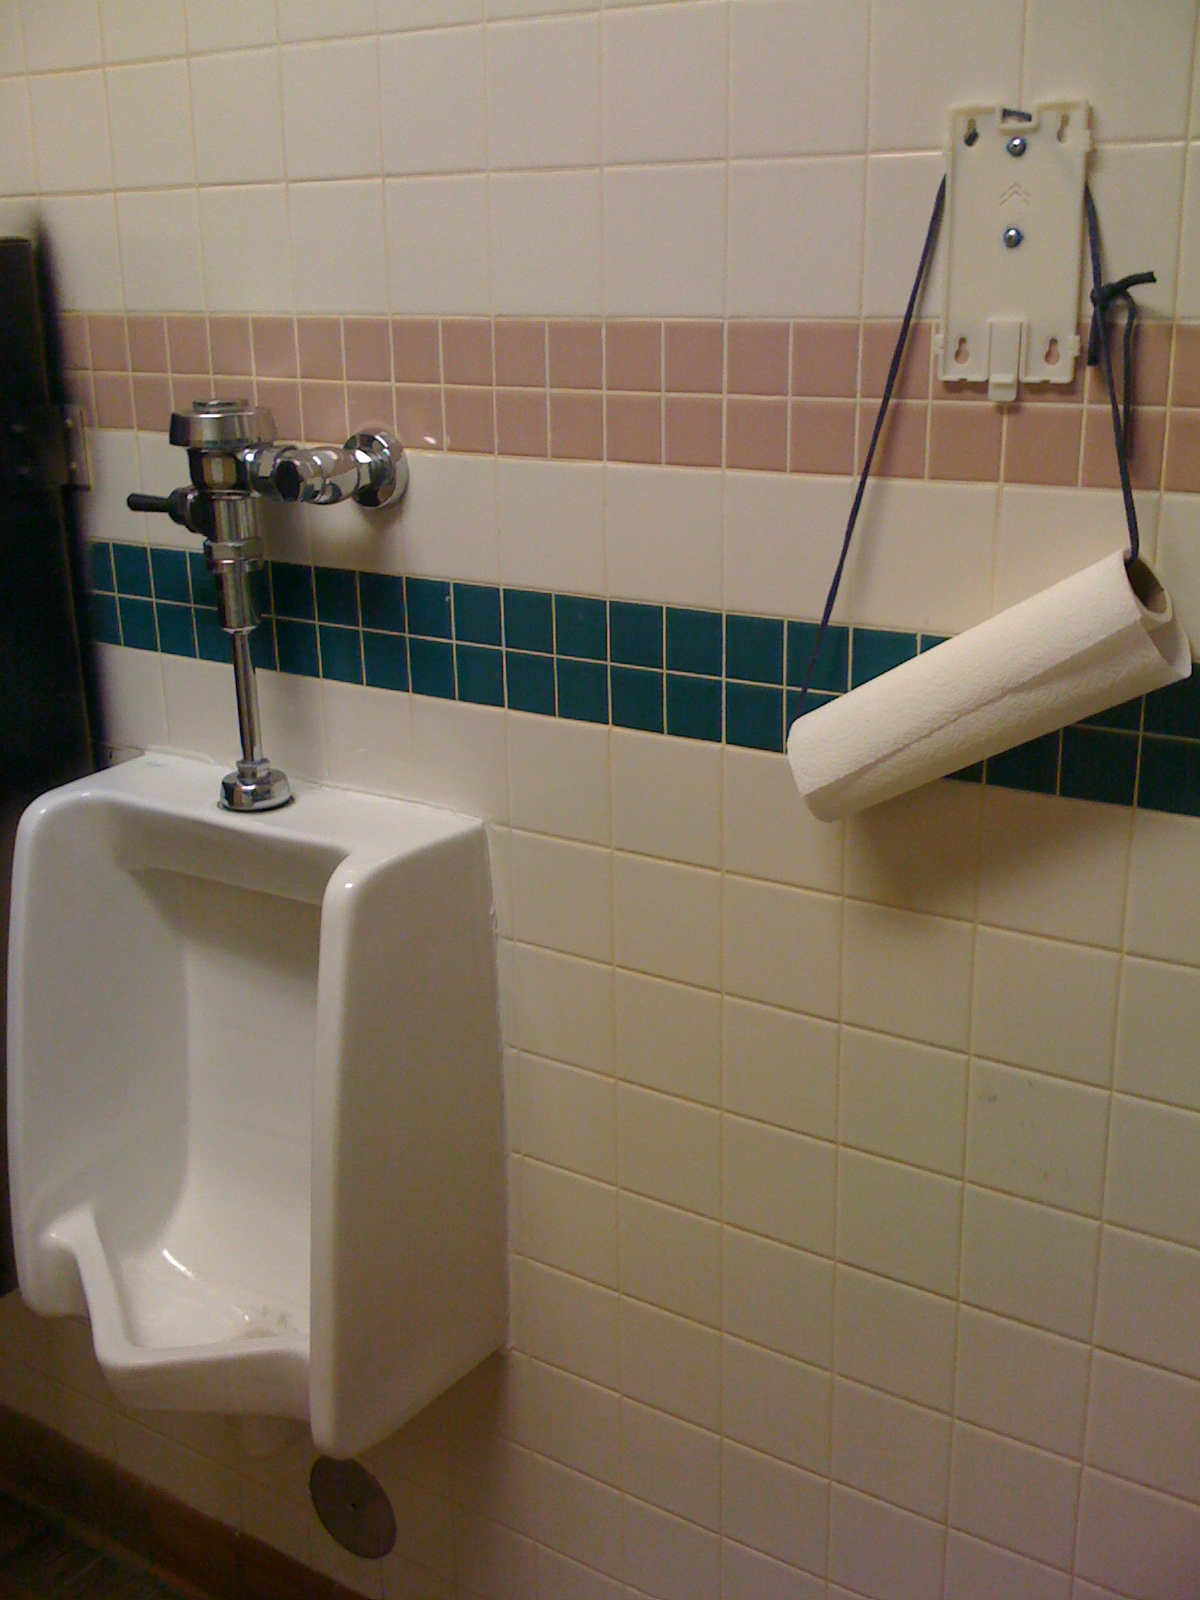 Bathroom Cleanliness as Indicator of Company Conditions